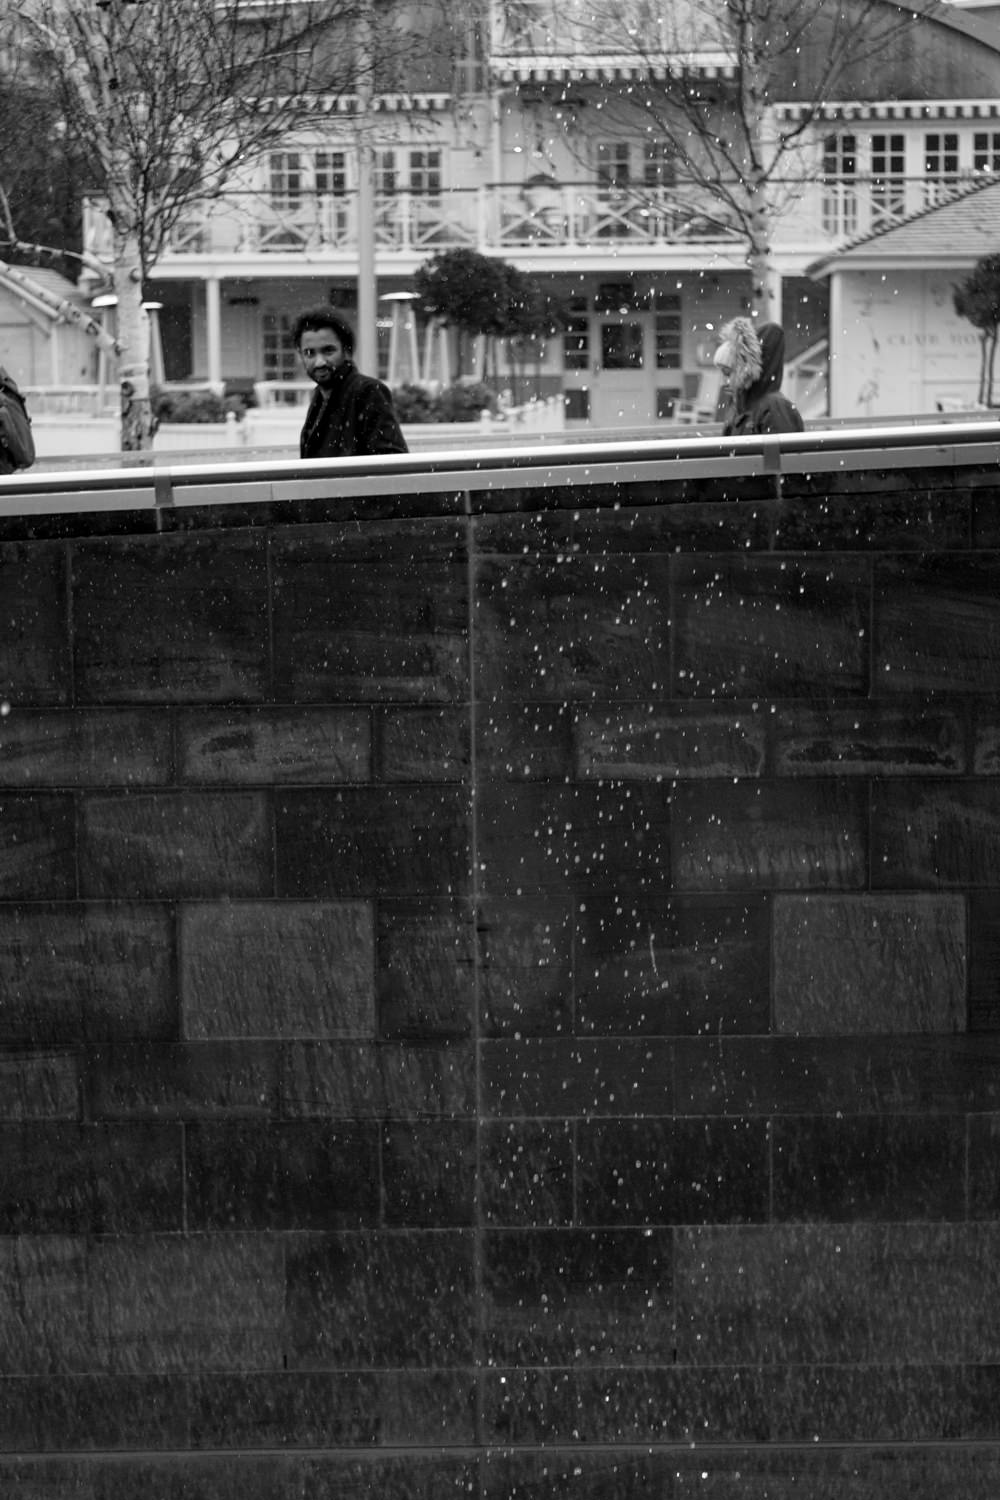 Two people walking past a cascade of water droplets